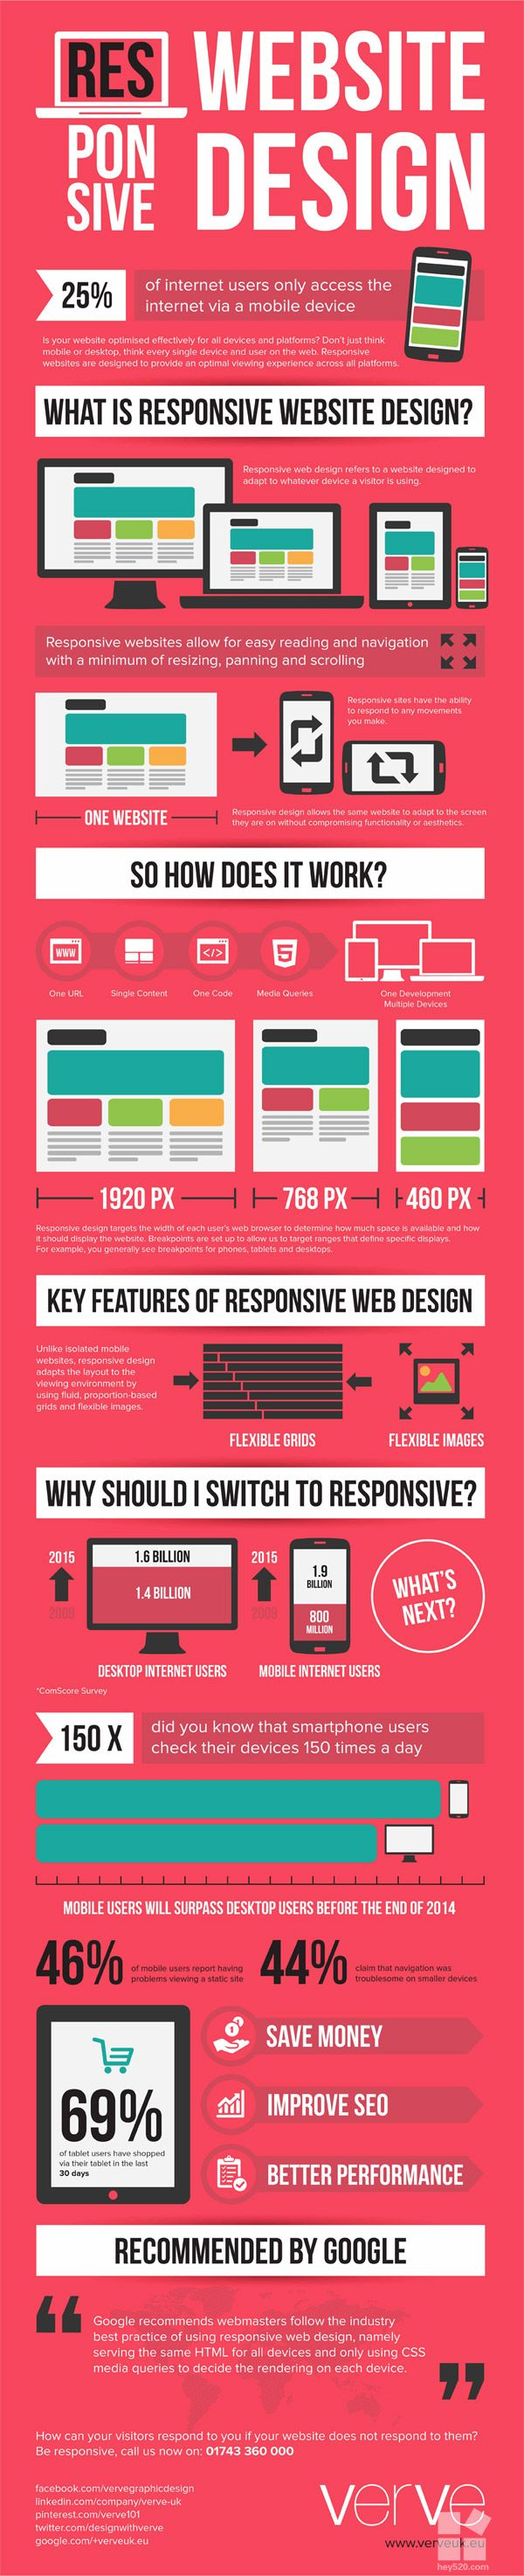 What is Responsive Website Design by Verve